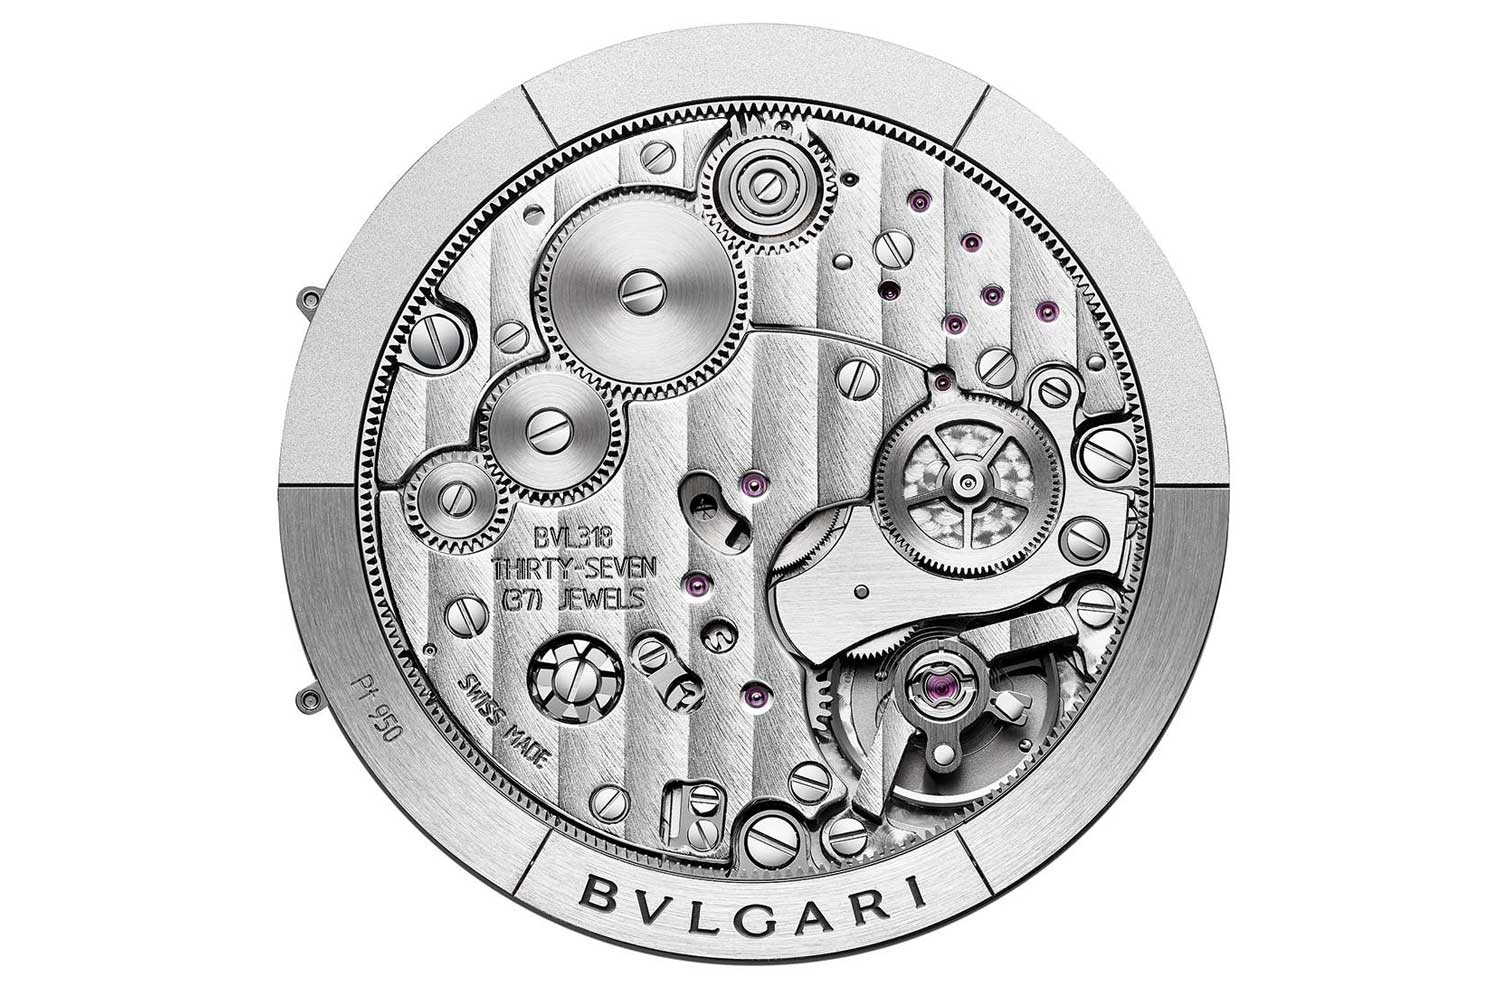 The ultra-thin cal. BVL 318 with a classically solid construction despite its height